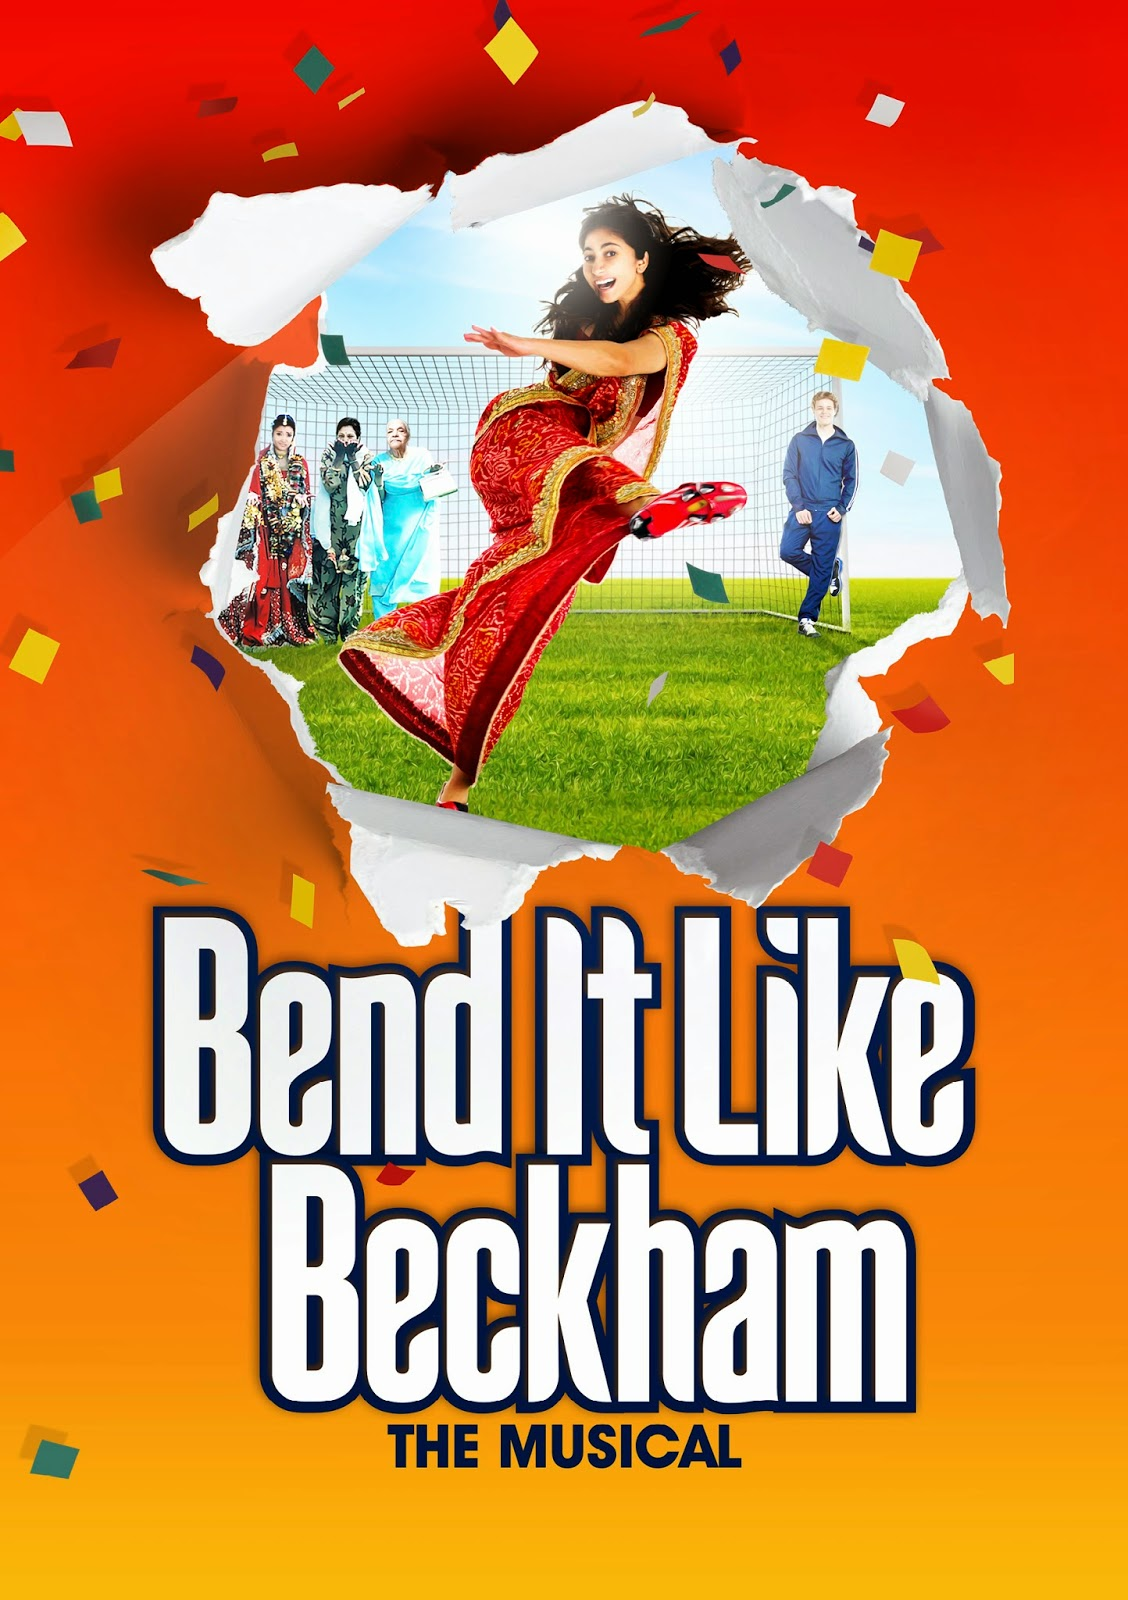 West End Frame: Bend It Like Beckham extends West End ...